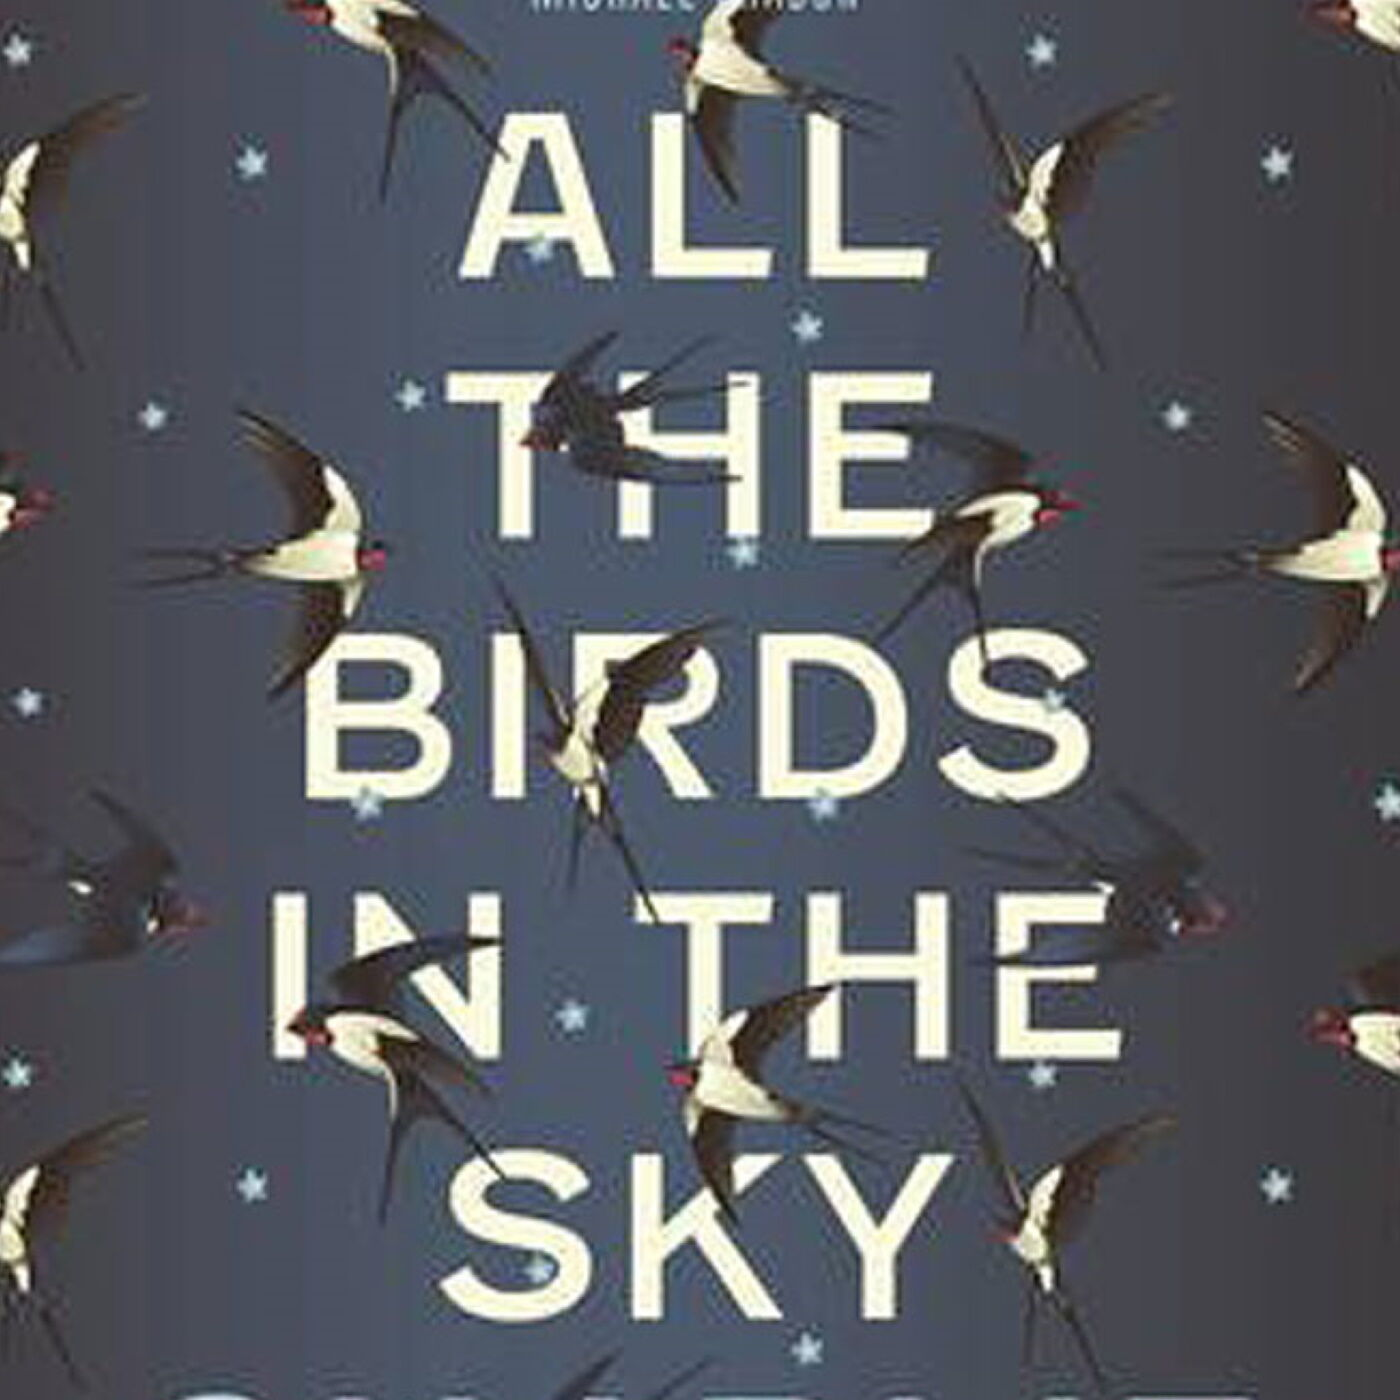 Book-Space! #14. All the Birds in the Sky by Charlie Jane Anders